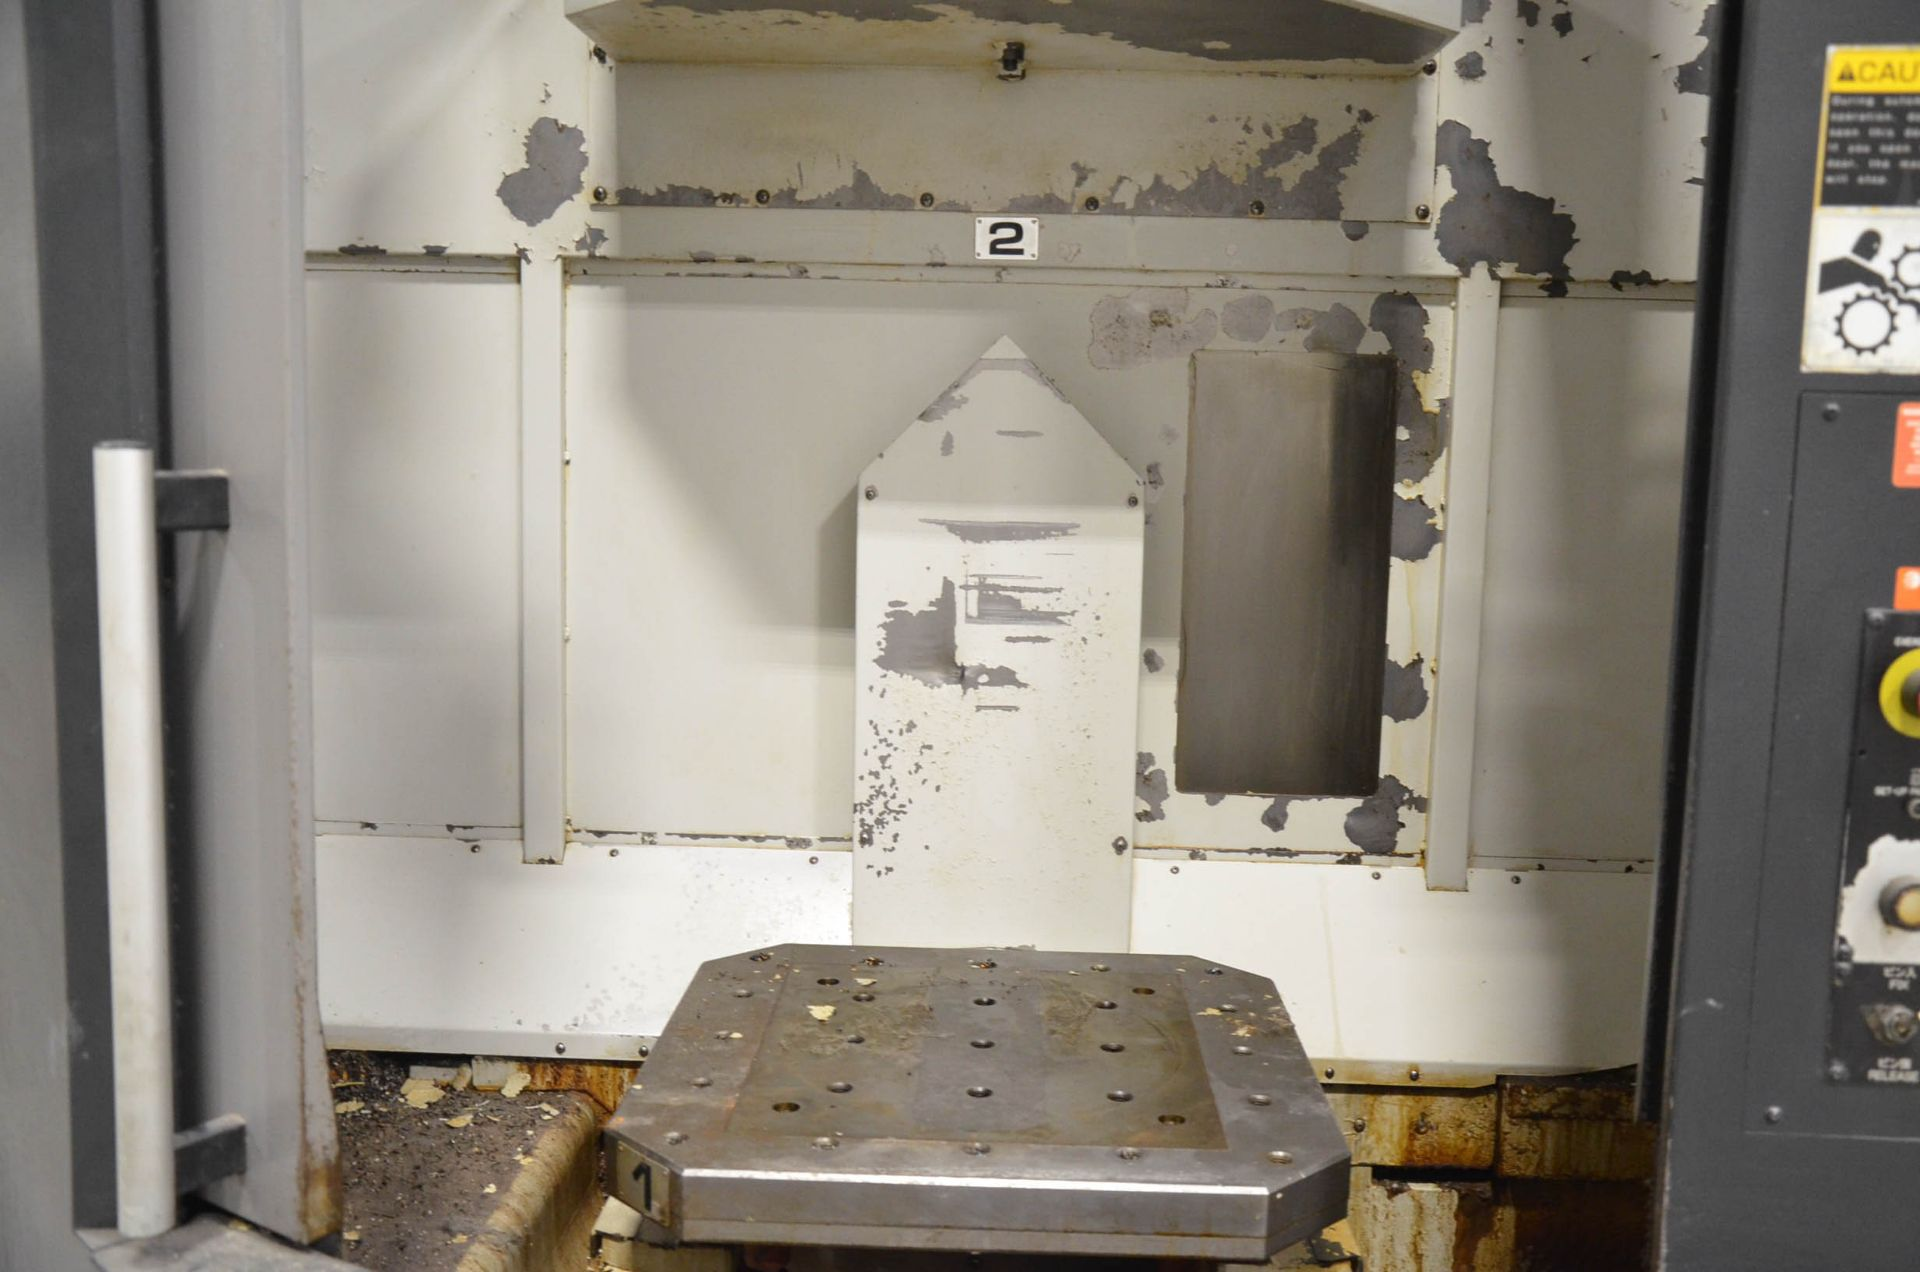 OKK (2006) HP500S TWIN-PALLET CNC HORIZONTAL MACHINING CENTER WITH FANUC 180I S-MB CNC CONTROL, 19. - Image 2 of 5